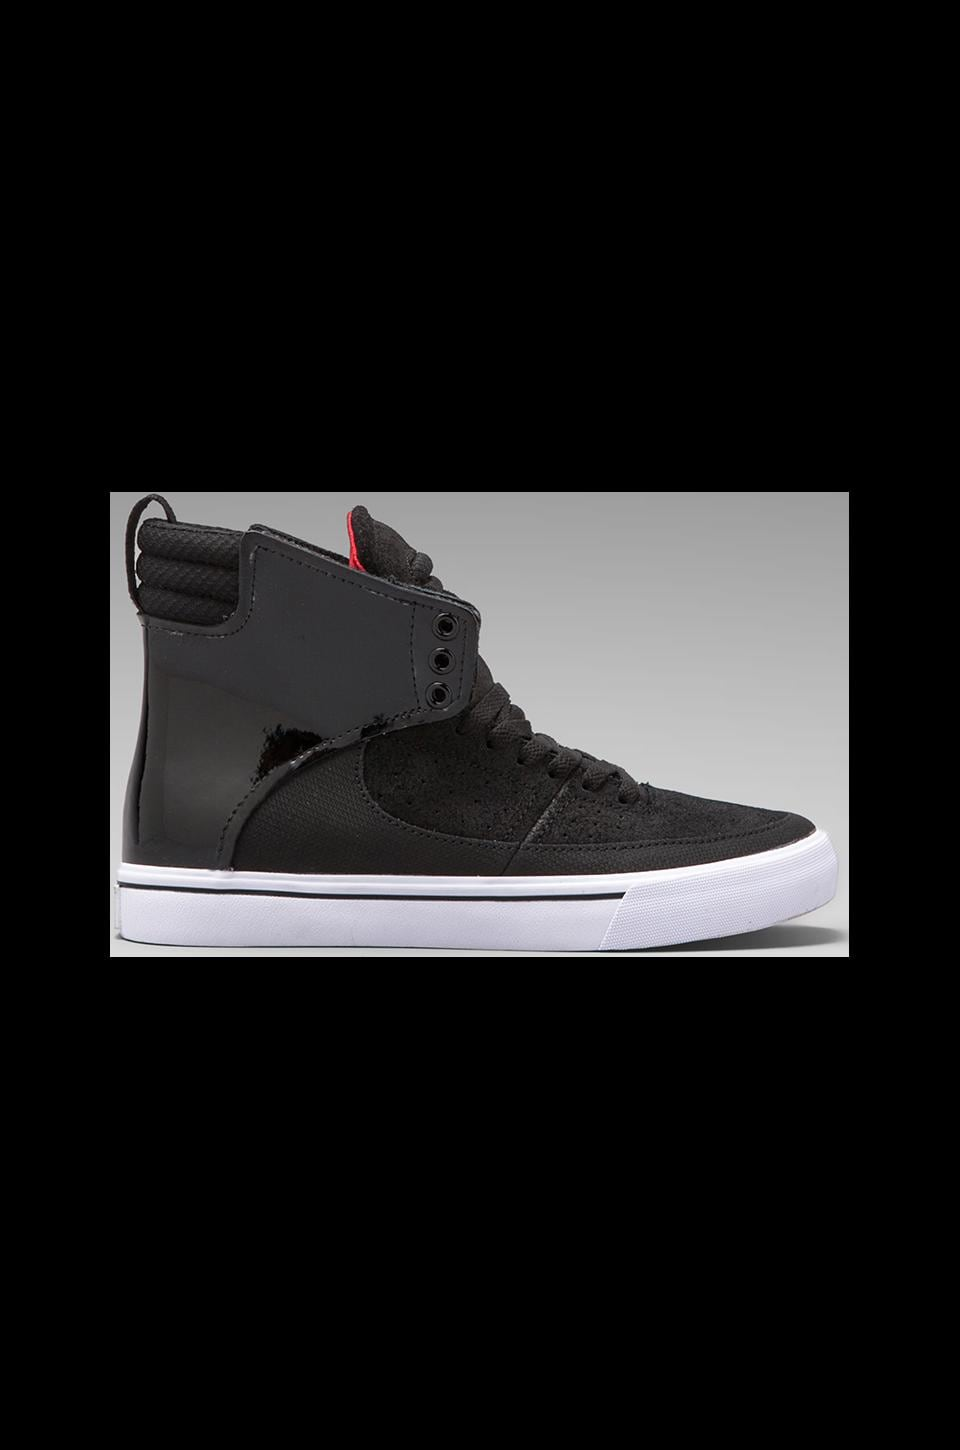 Supra Kondor in Black